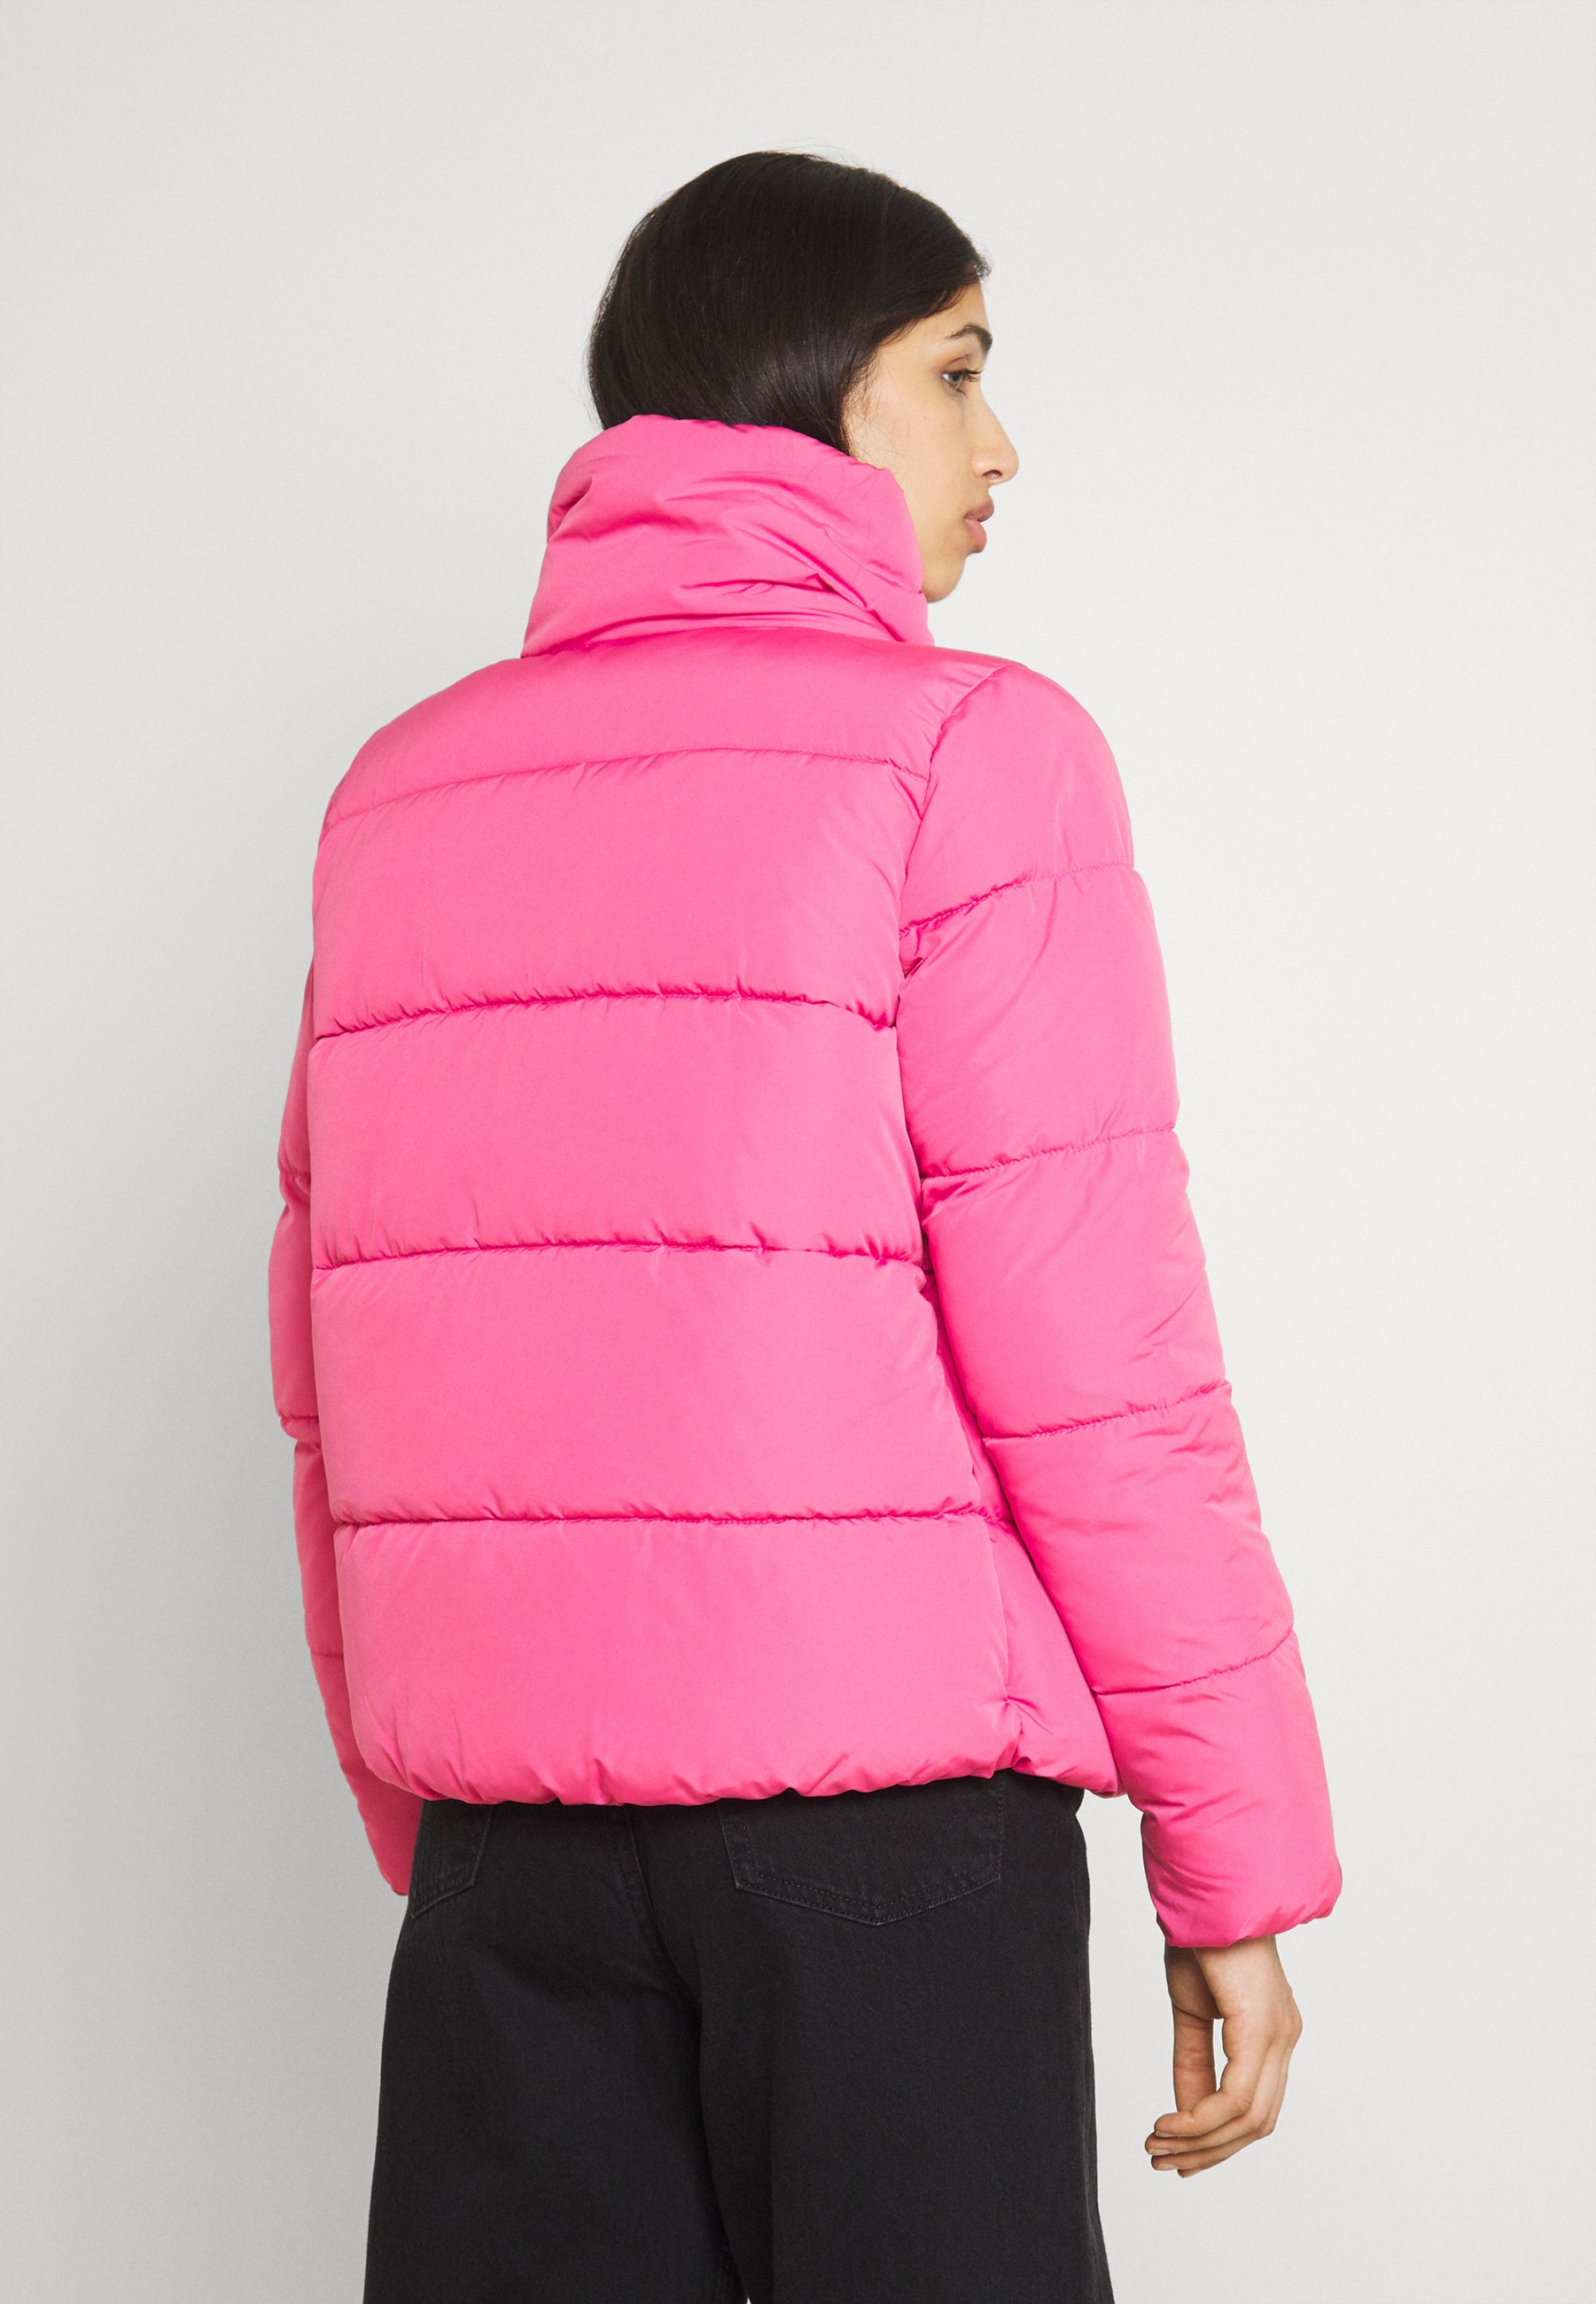 Donna ONLCOOL PUFFER JACKET - Giacca invernale